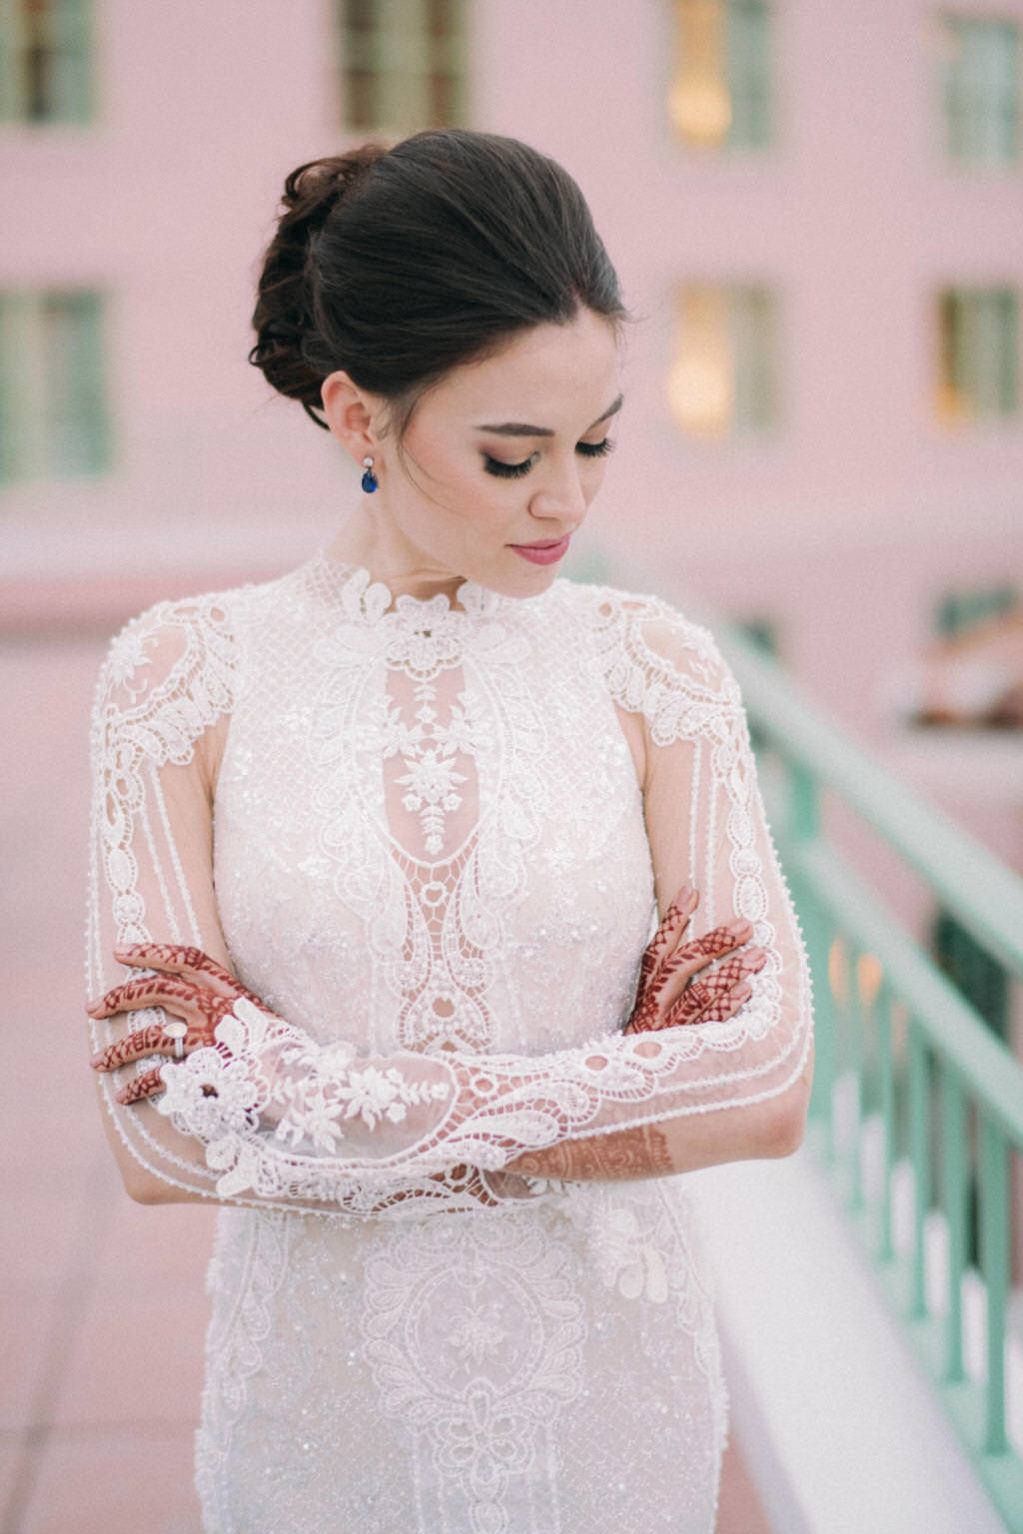 Florida Indian Bride Beauty Wedding Portrait in Floral Lace and Illusion Fitted High Neckline Long Sleeve Wedding Dress and Updo | South Tampa Couture Wedding Dress Boutique Isabel O'Neil Bridal Collection | Galia Lahav Couture Wedding Dress | Tampa Bay Bridal Hair and Makeup Artist Michele Renee The Studio